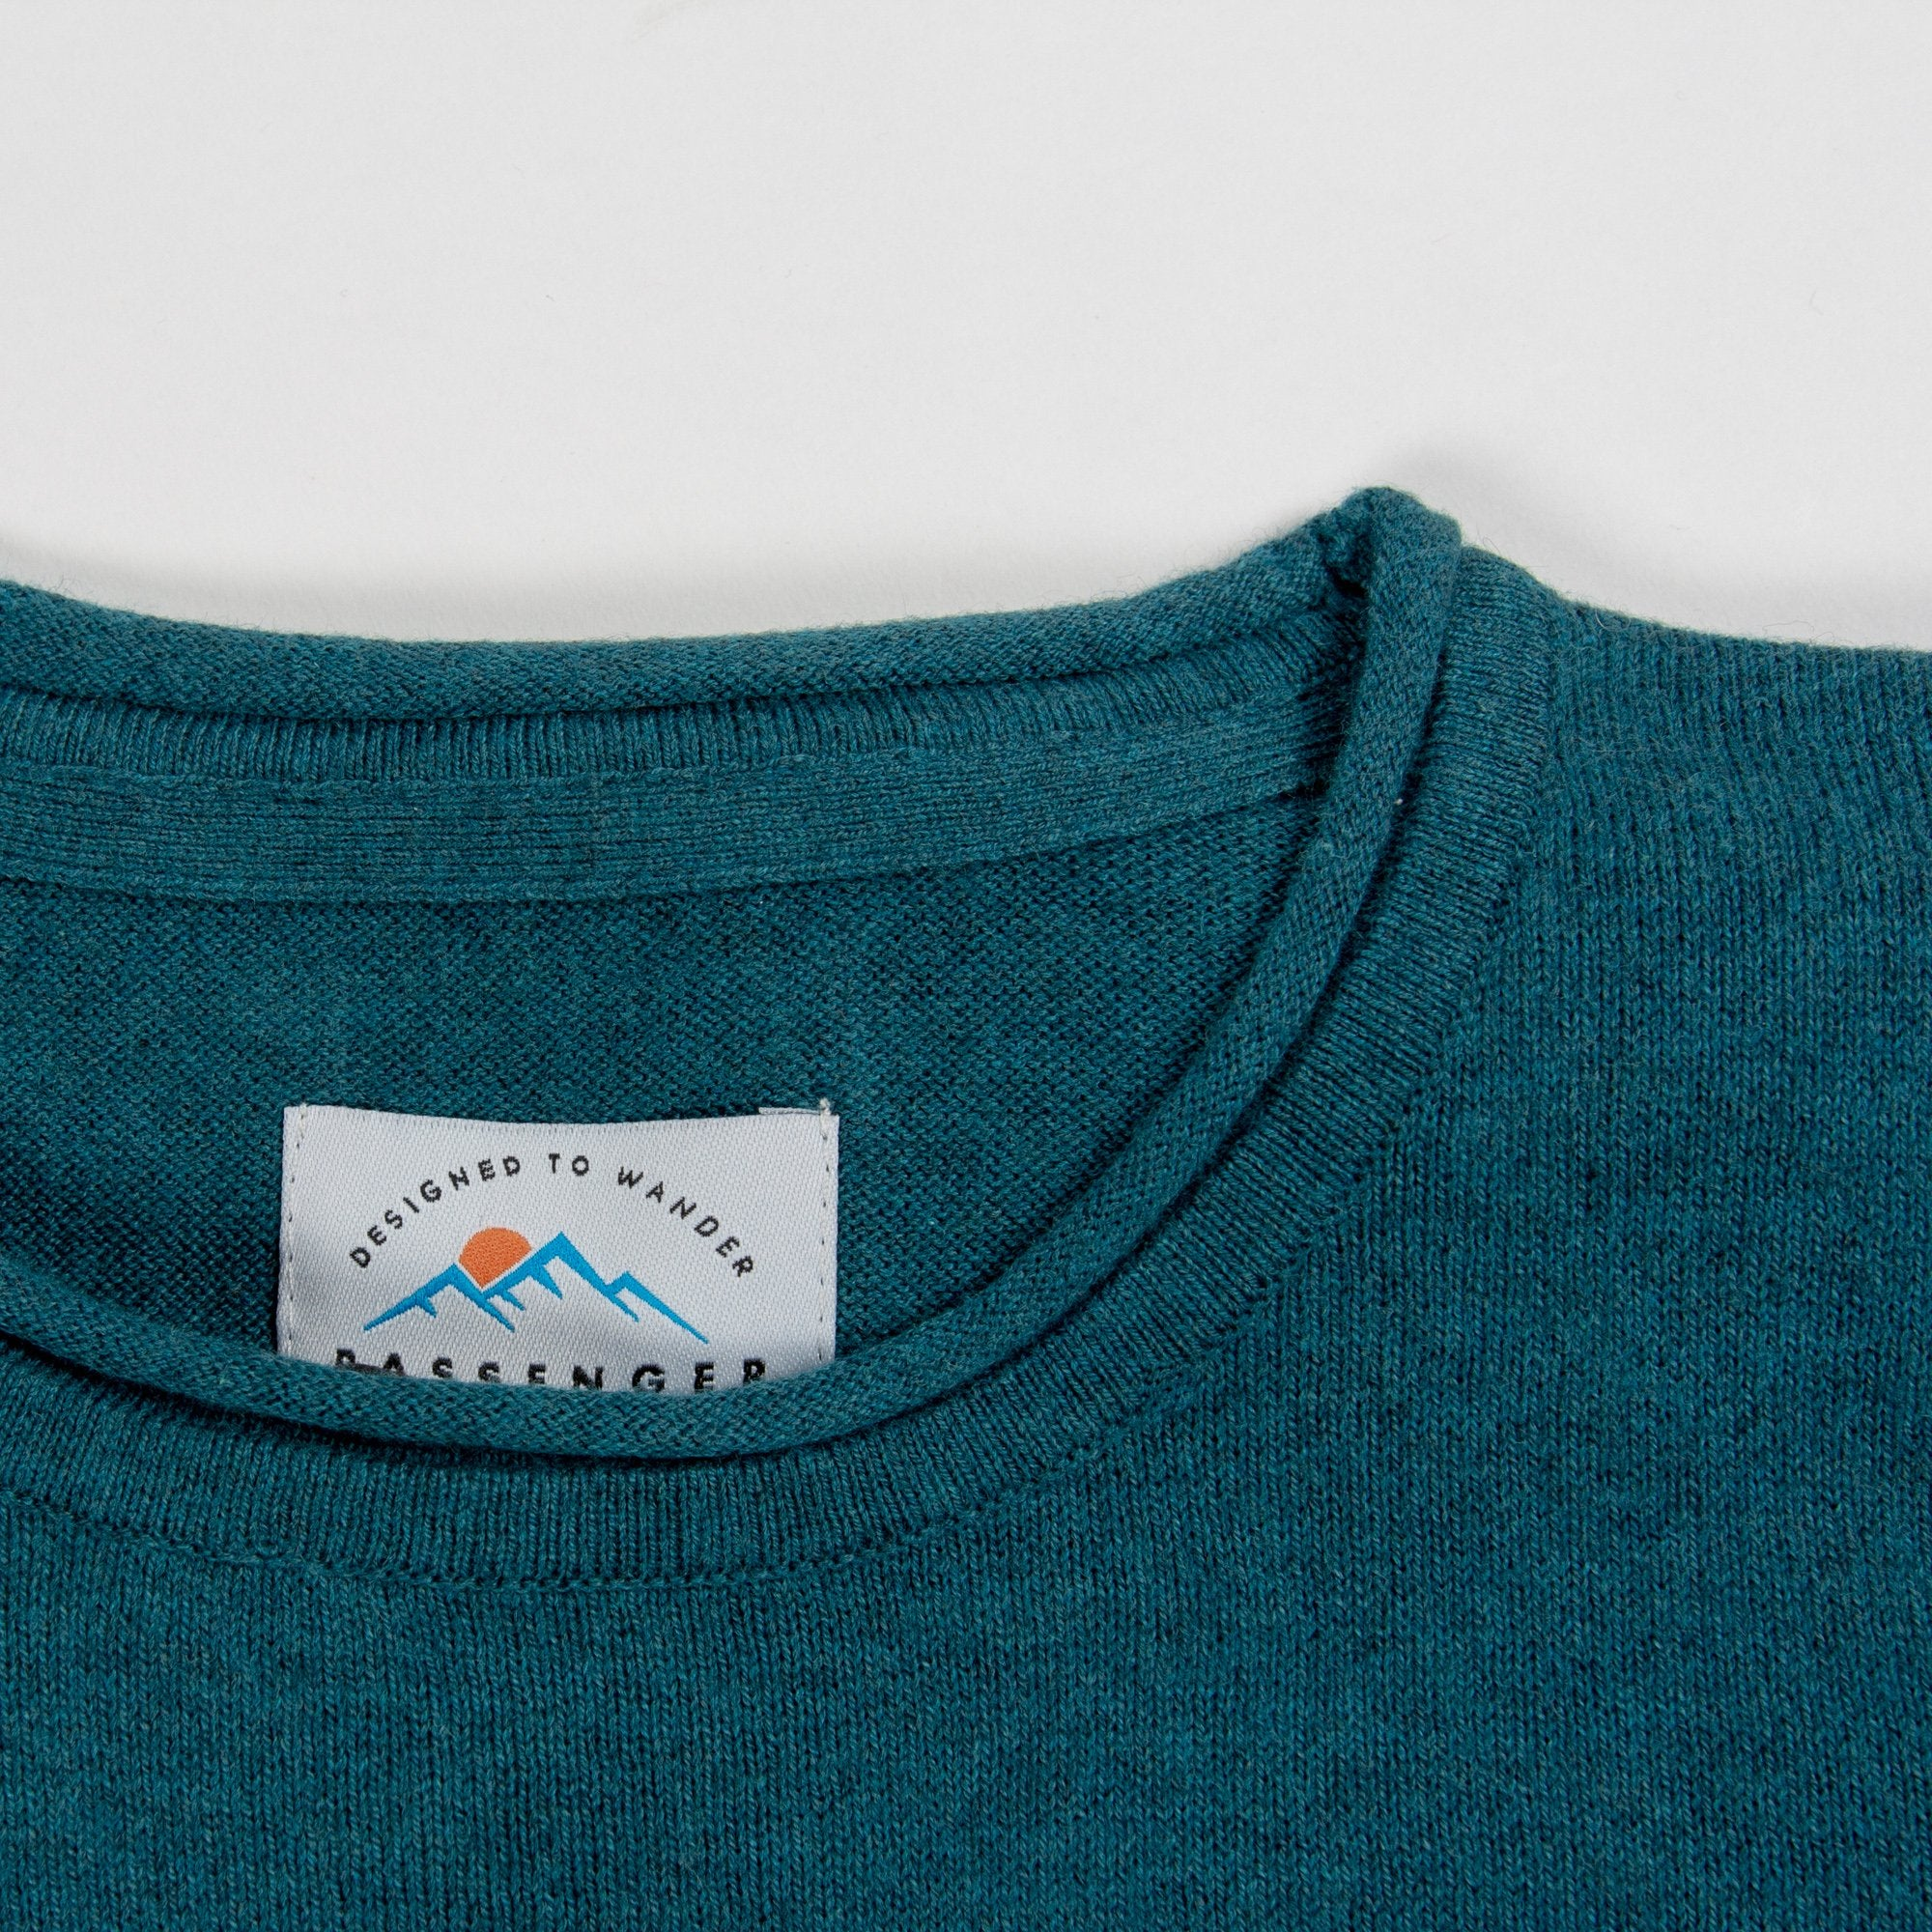 Himalayas Knitted Sweater - Teal image 4